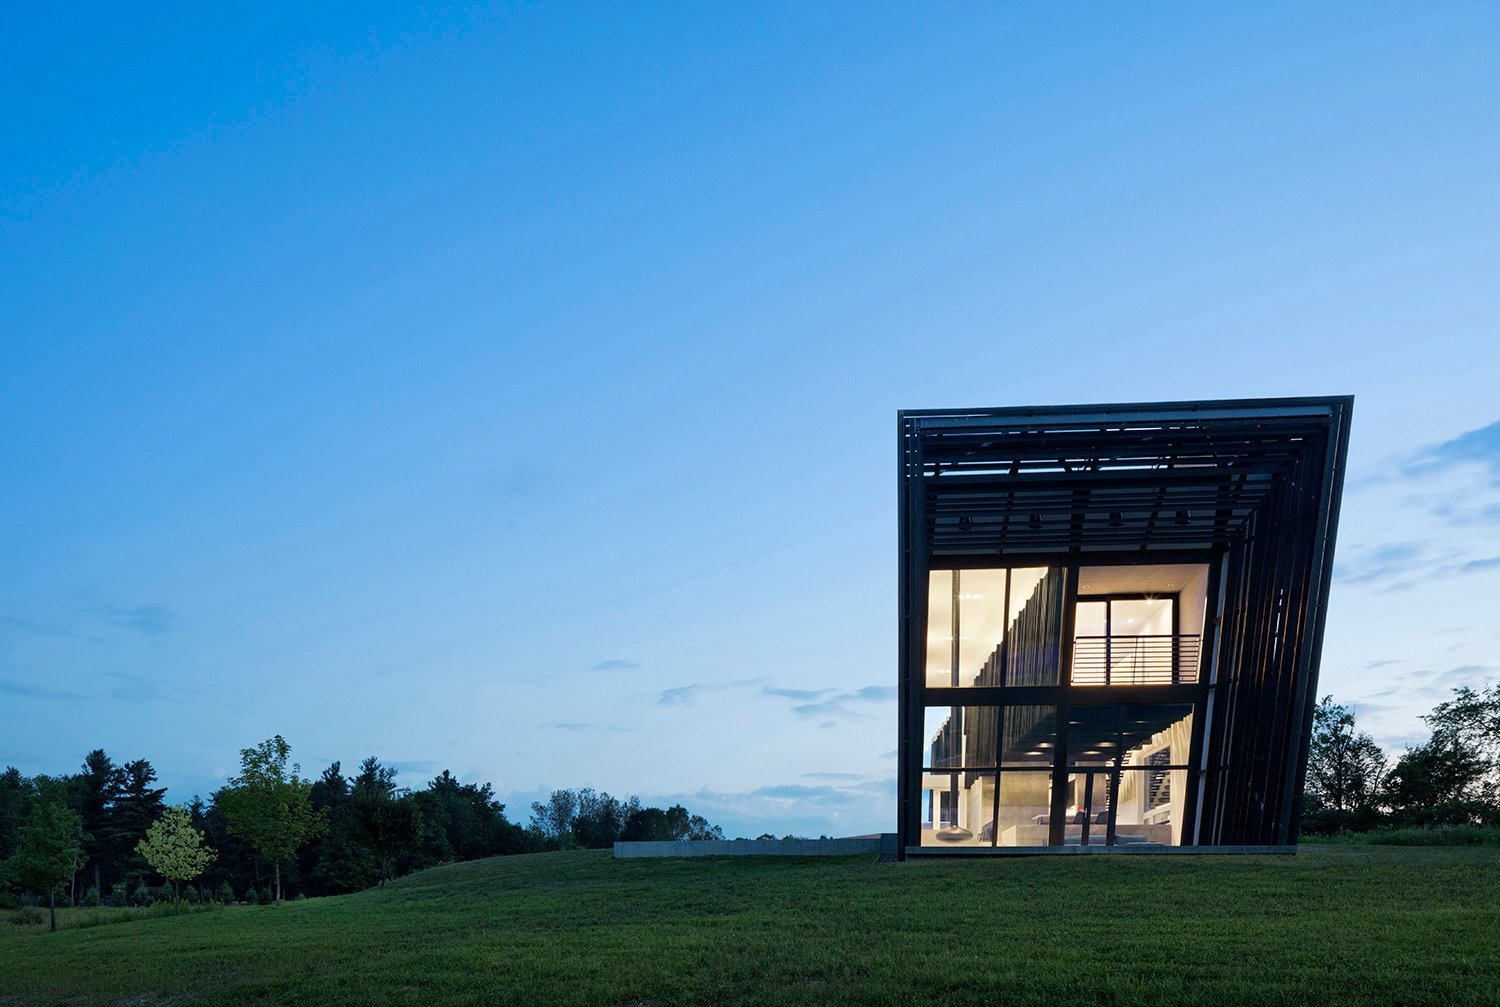 Exterior view showing inner volume hovering within outer volume Michael Moran / OTTO